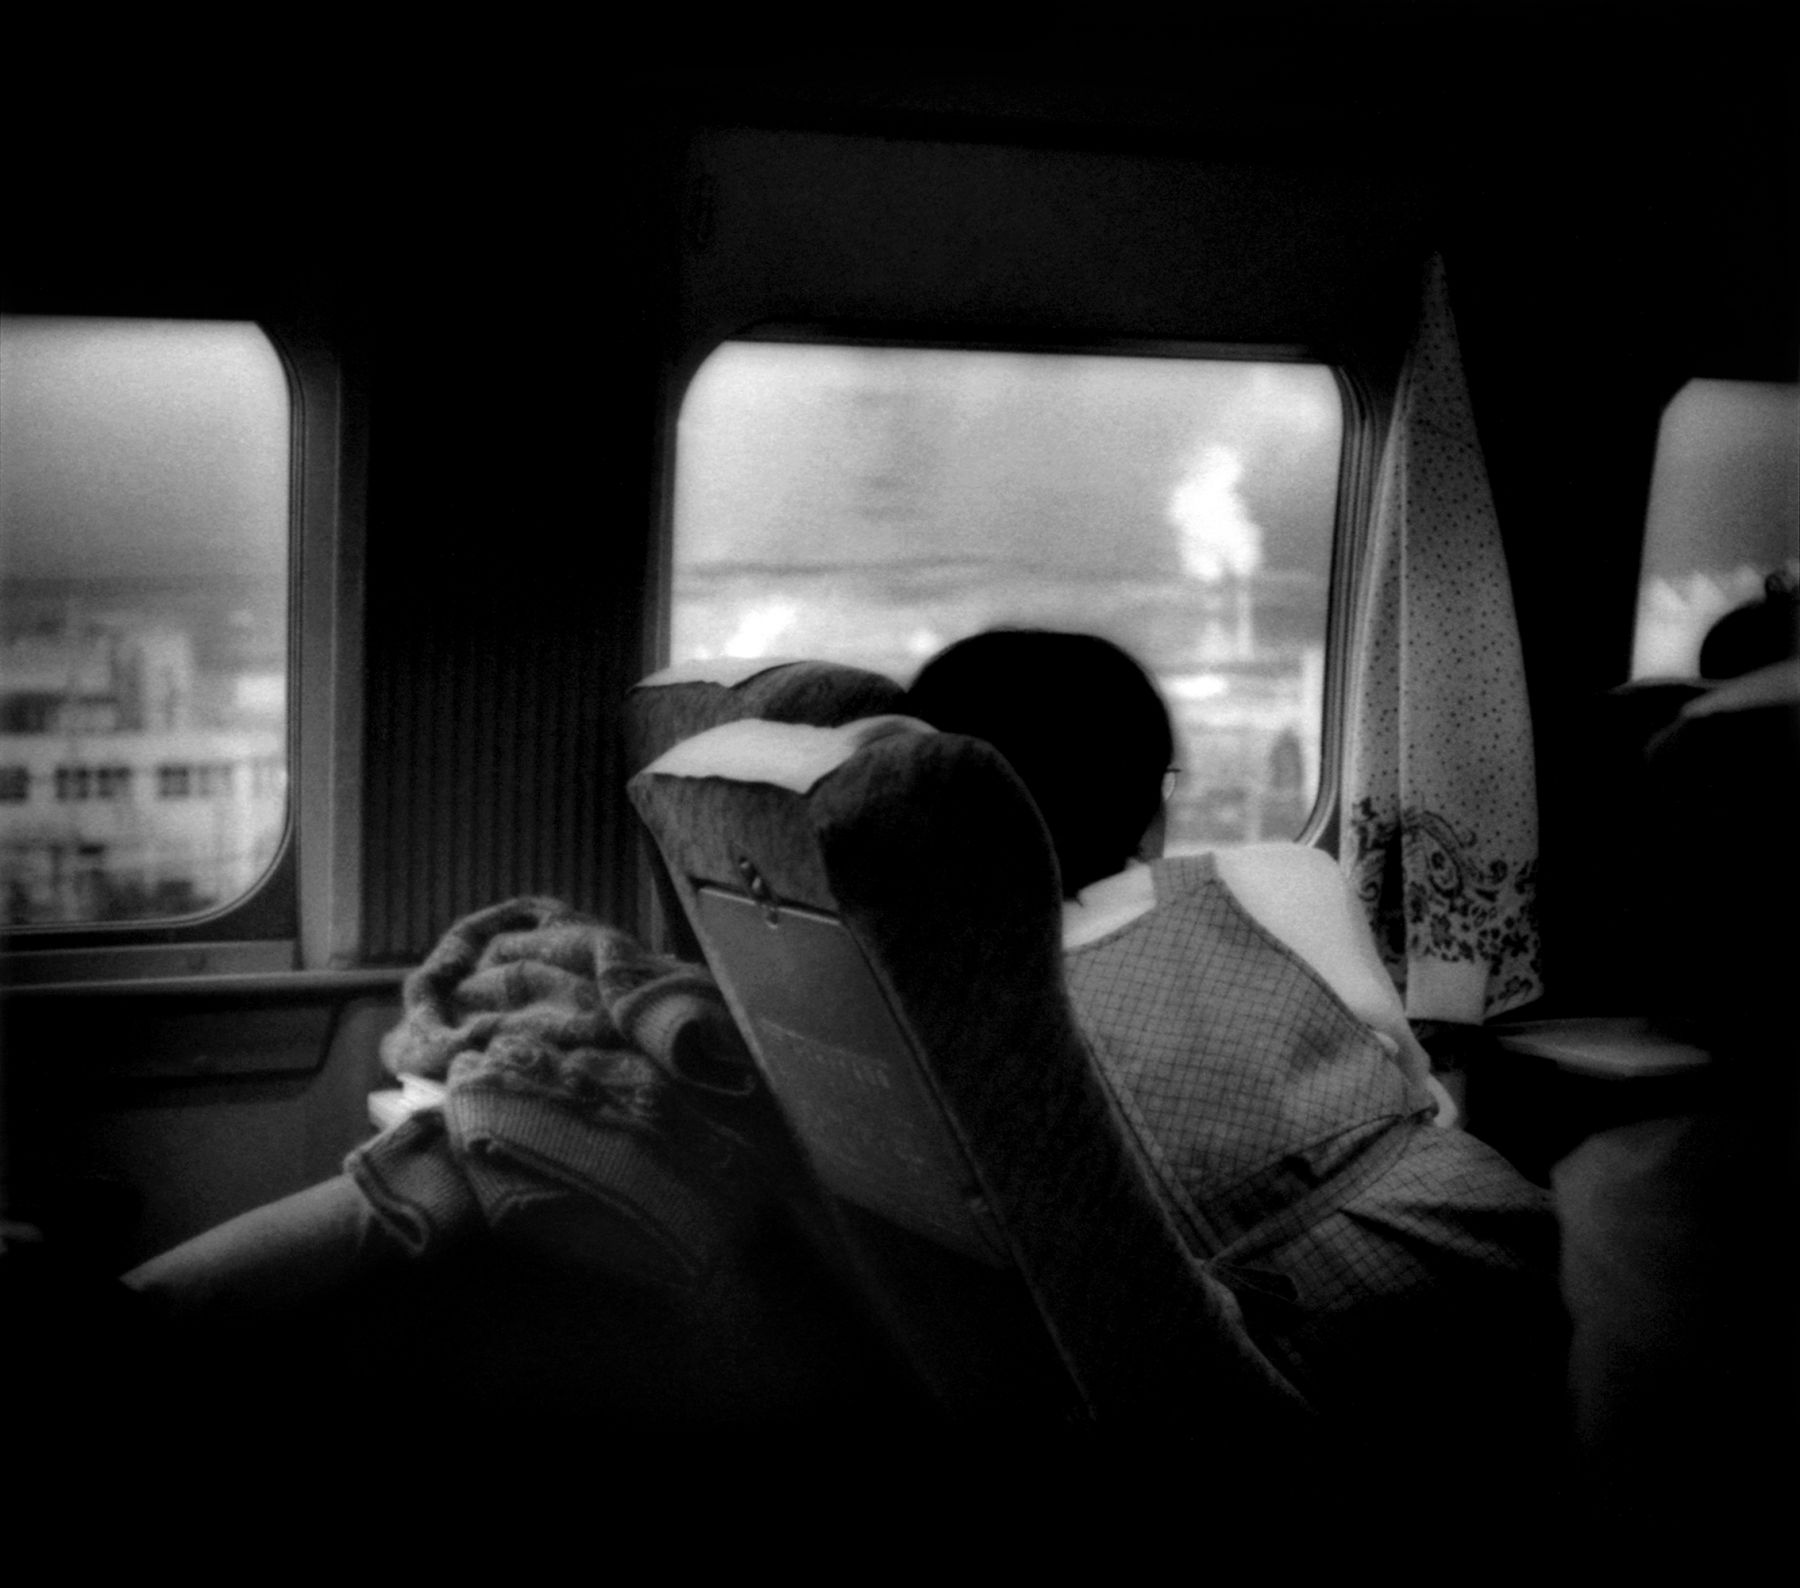 James Whitlow Delano, Mangaland, Gazing out from Shinkansen Bullet Train, Shizuoka Prefecture, Japan, 2001, Sous Les Etoiles Gallery